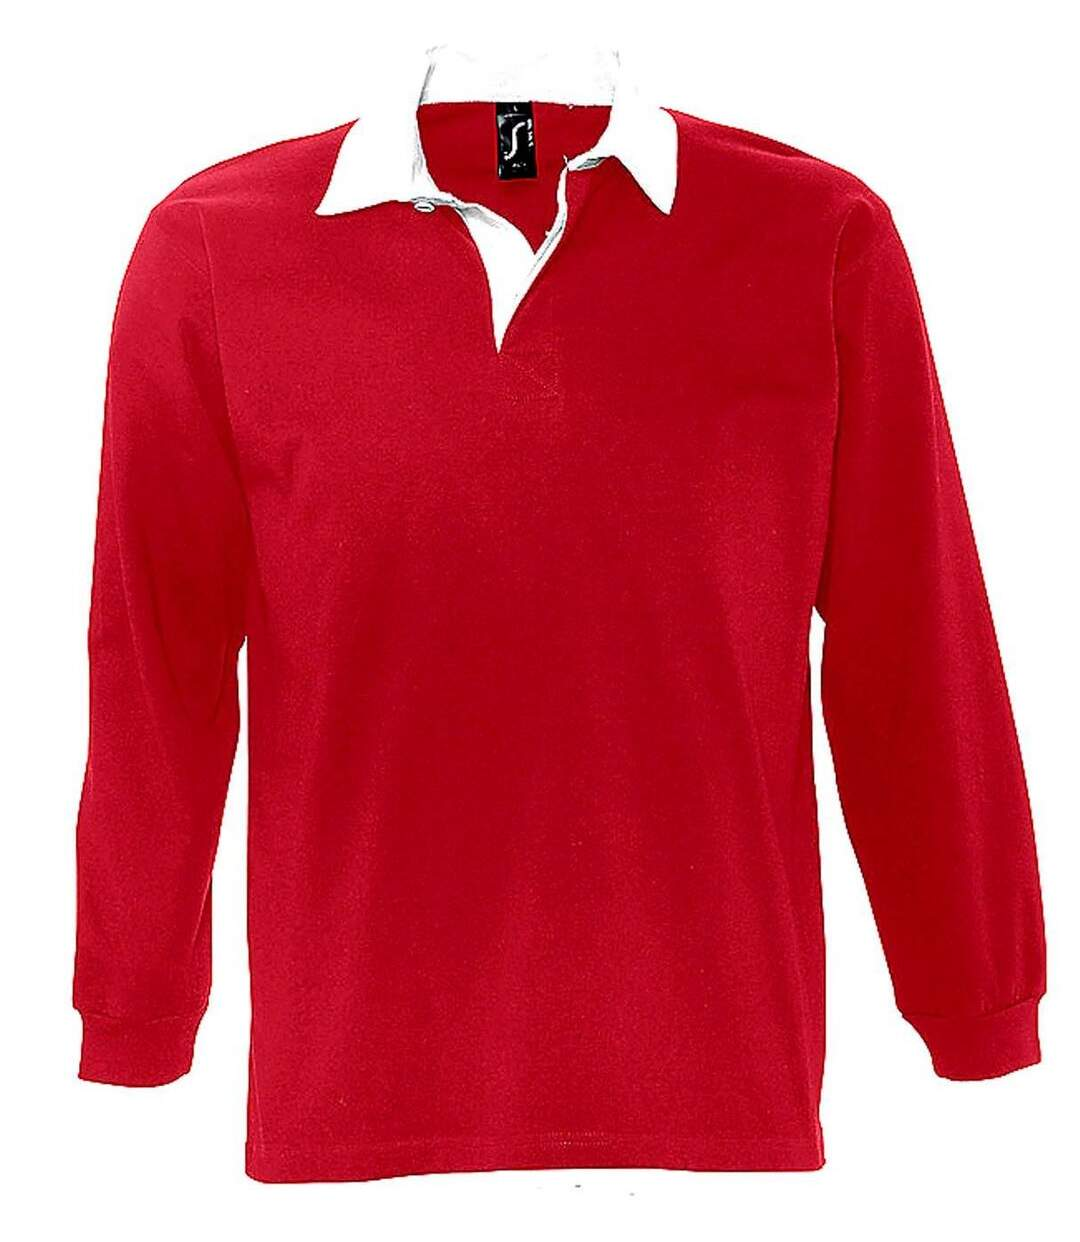 Polo rugby manches longues HOMME - 11313 - rouge